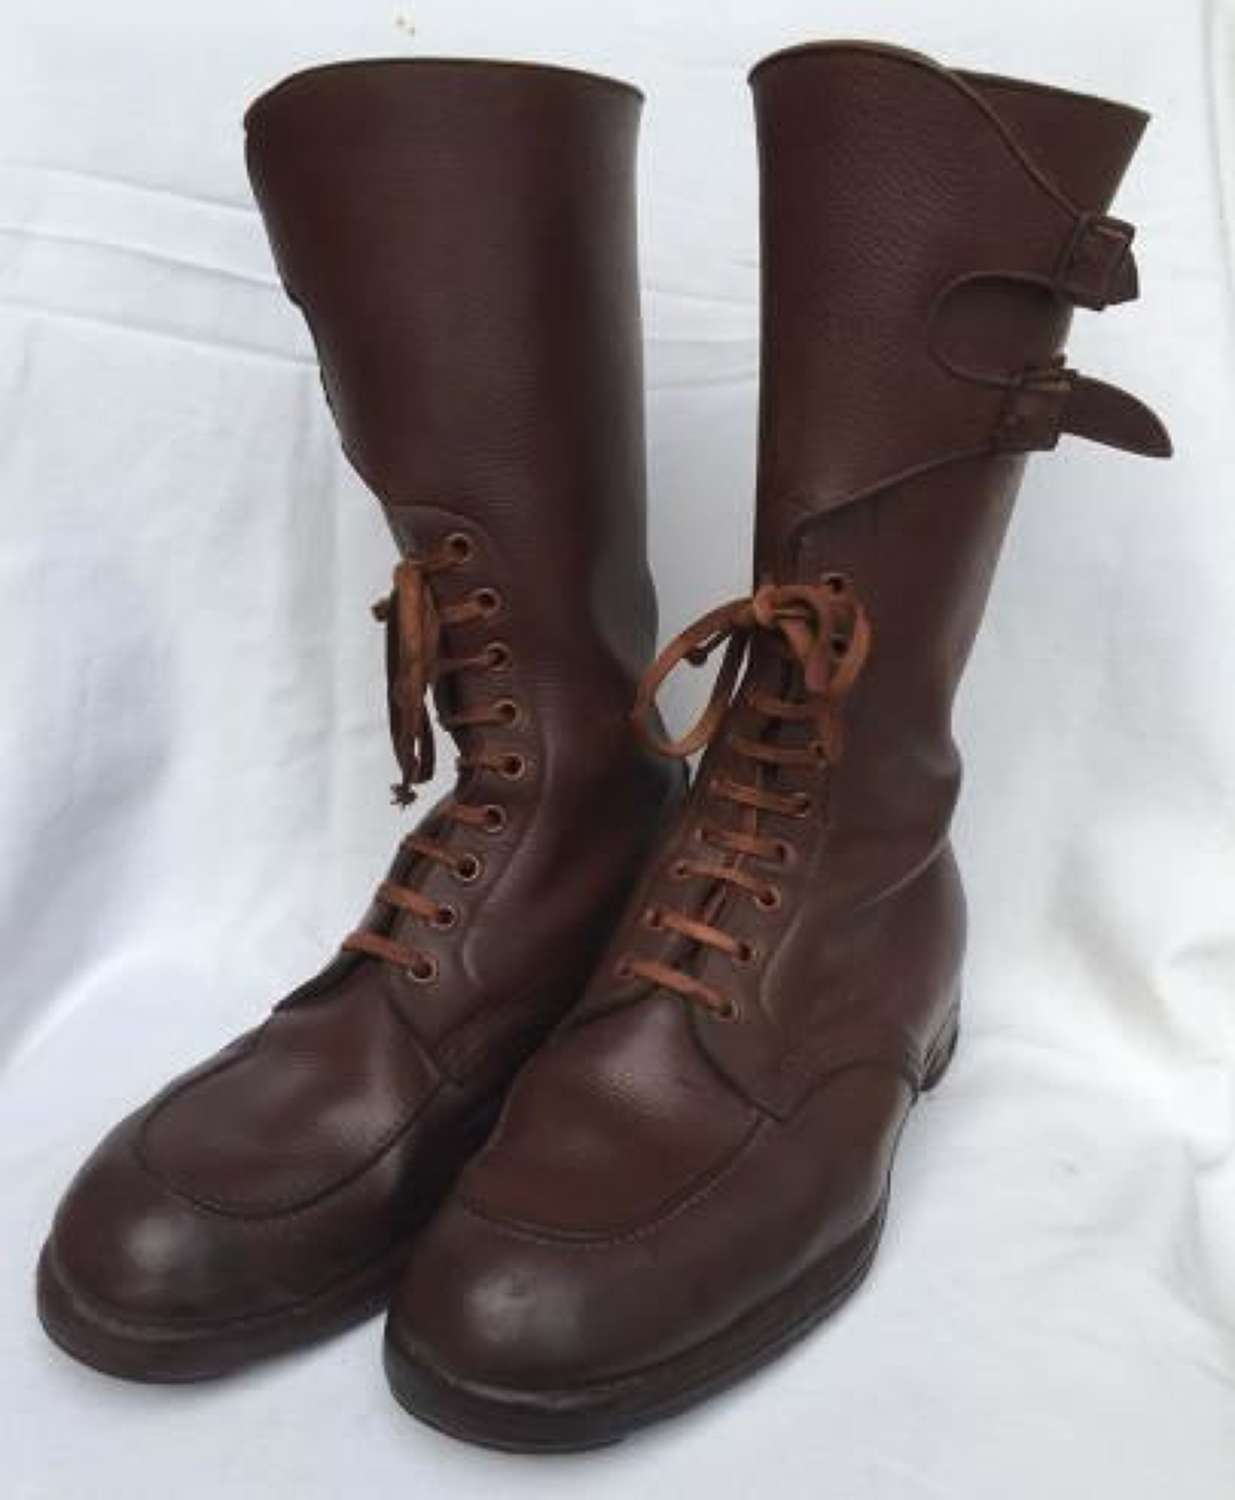 1944 Dated Officers Boots By John White - Size 8